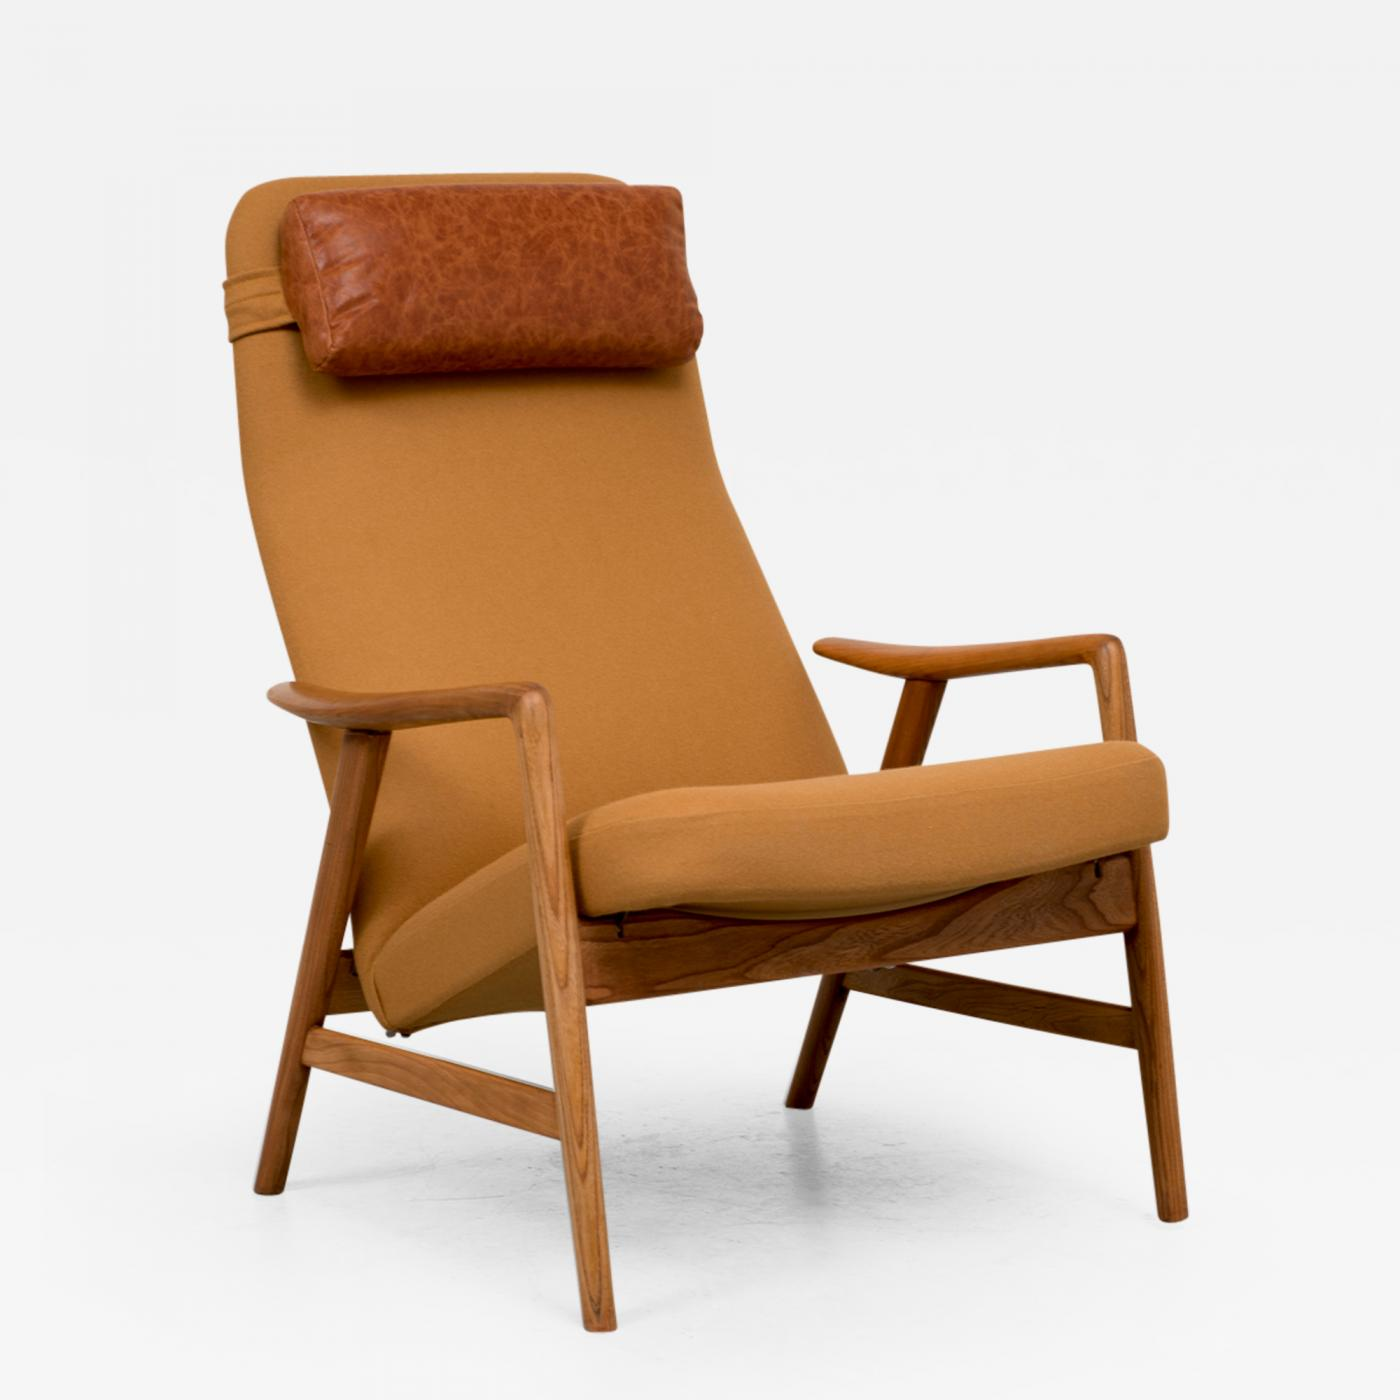 Alf Svensson Alf Svensson Reclining Lounge chair for Fritz Hansen